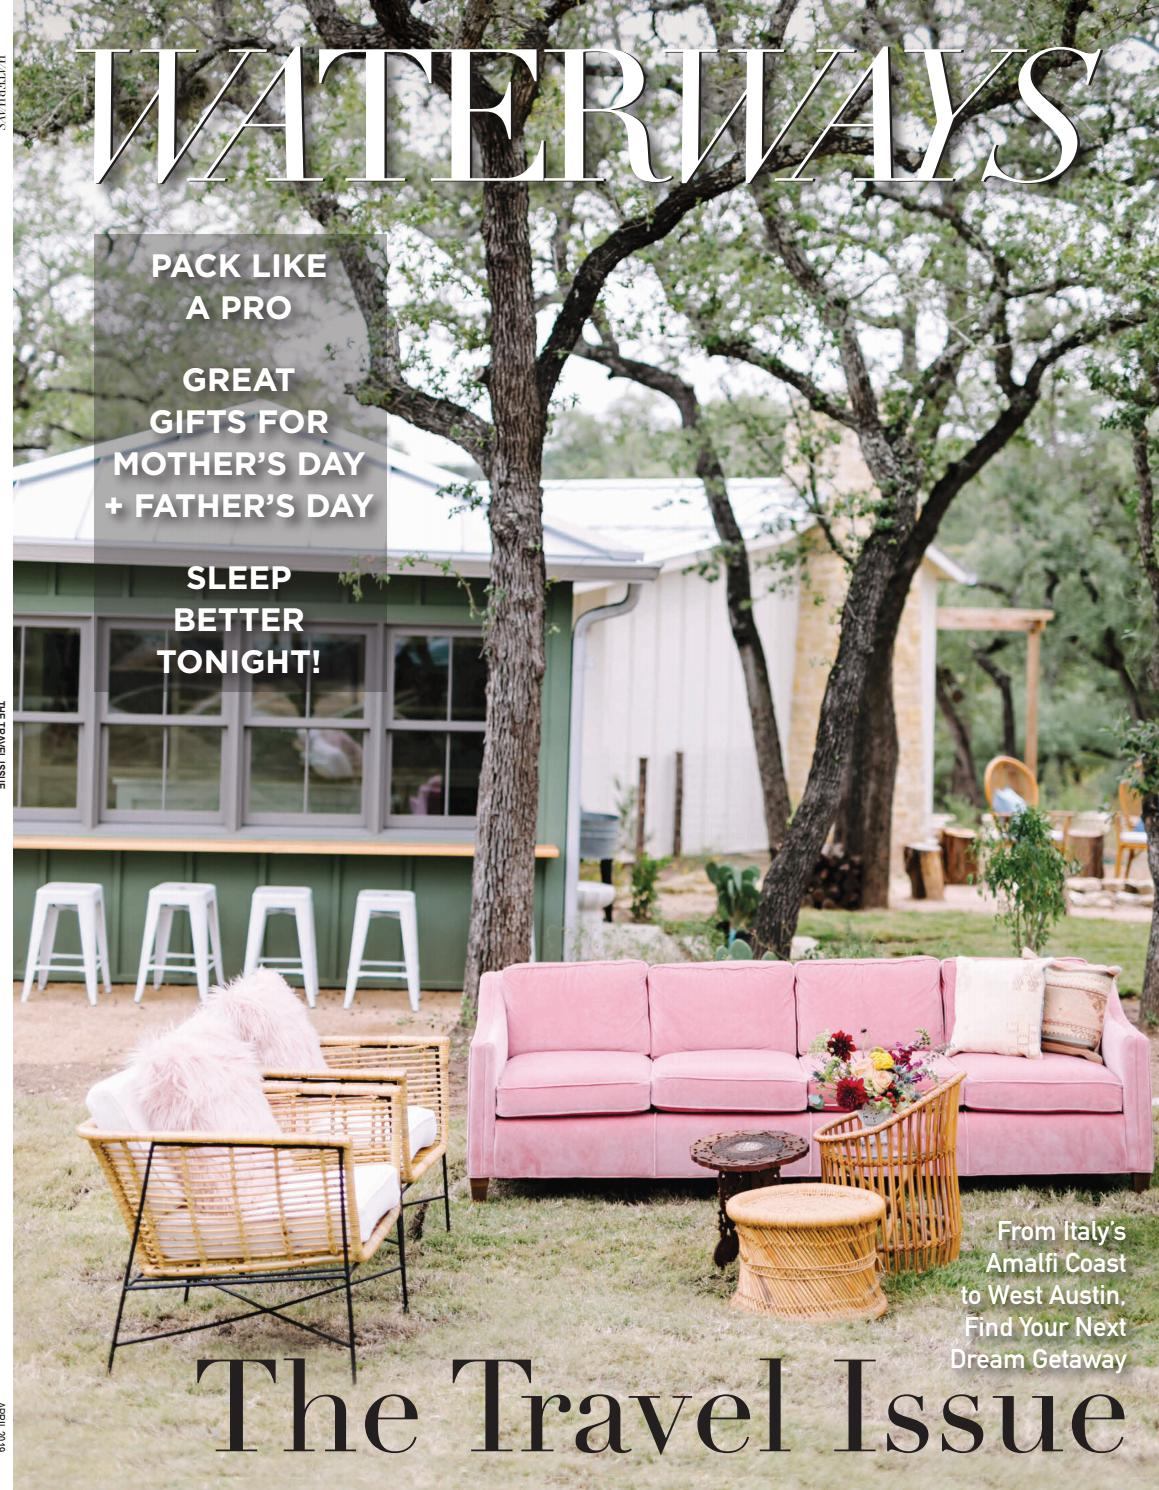 Waterways Magazine April Issue 2019 by Waterways_Austin - issuu